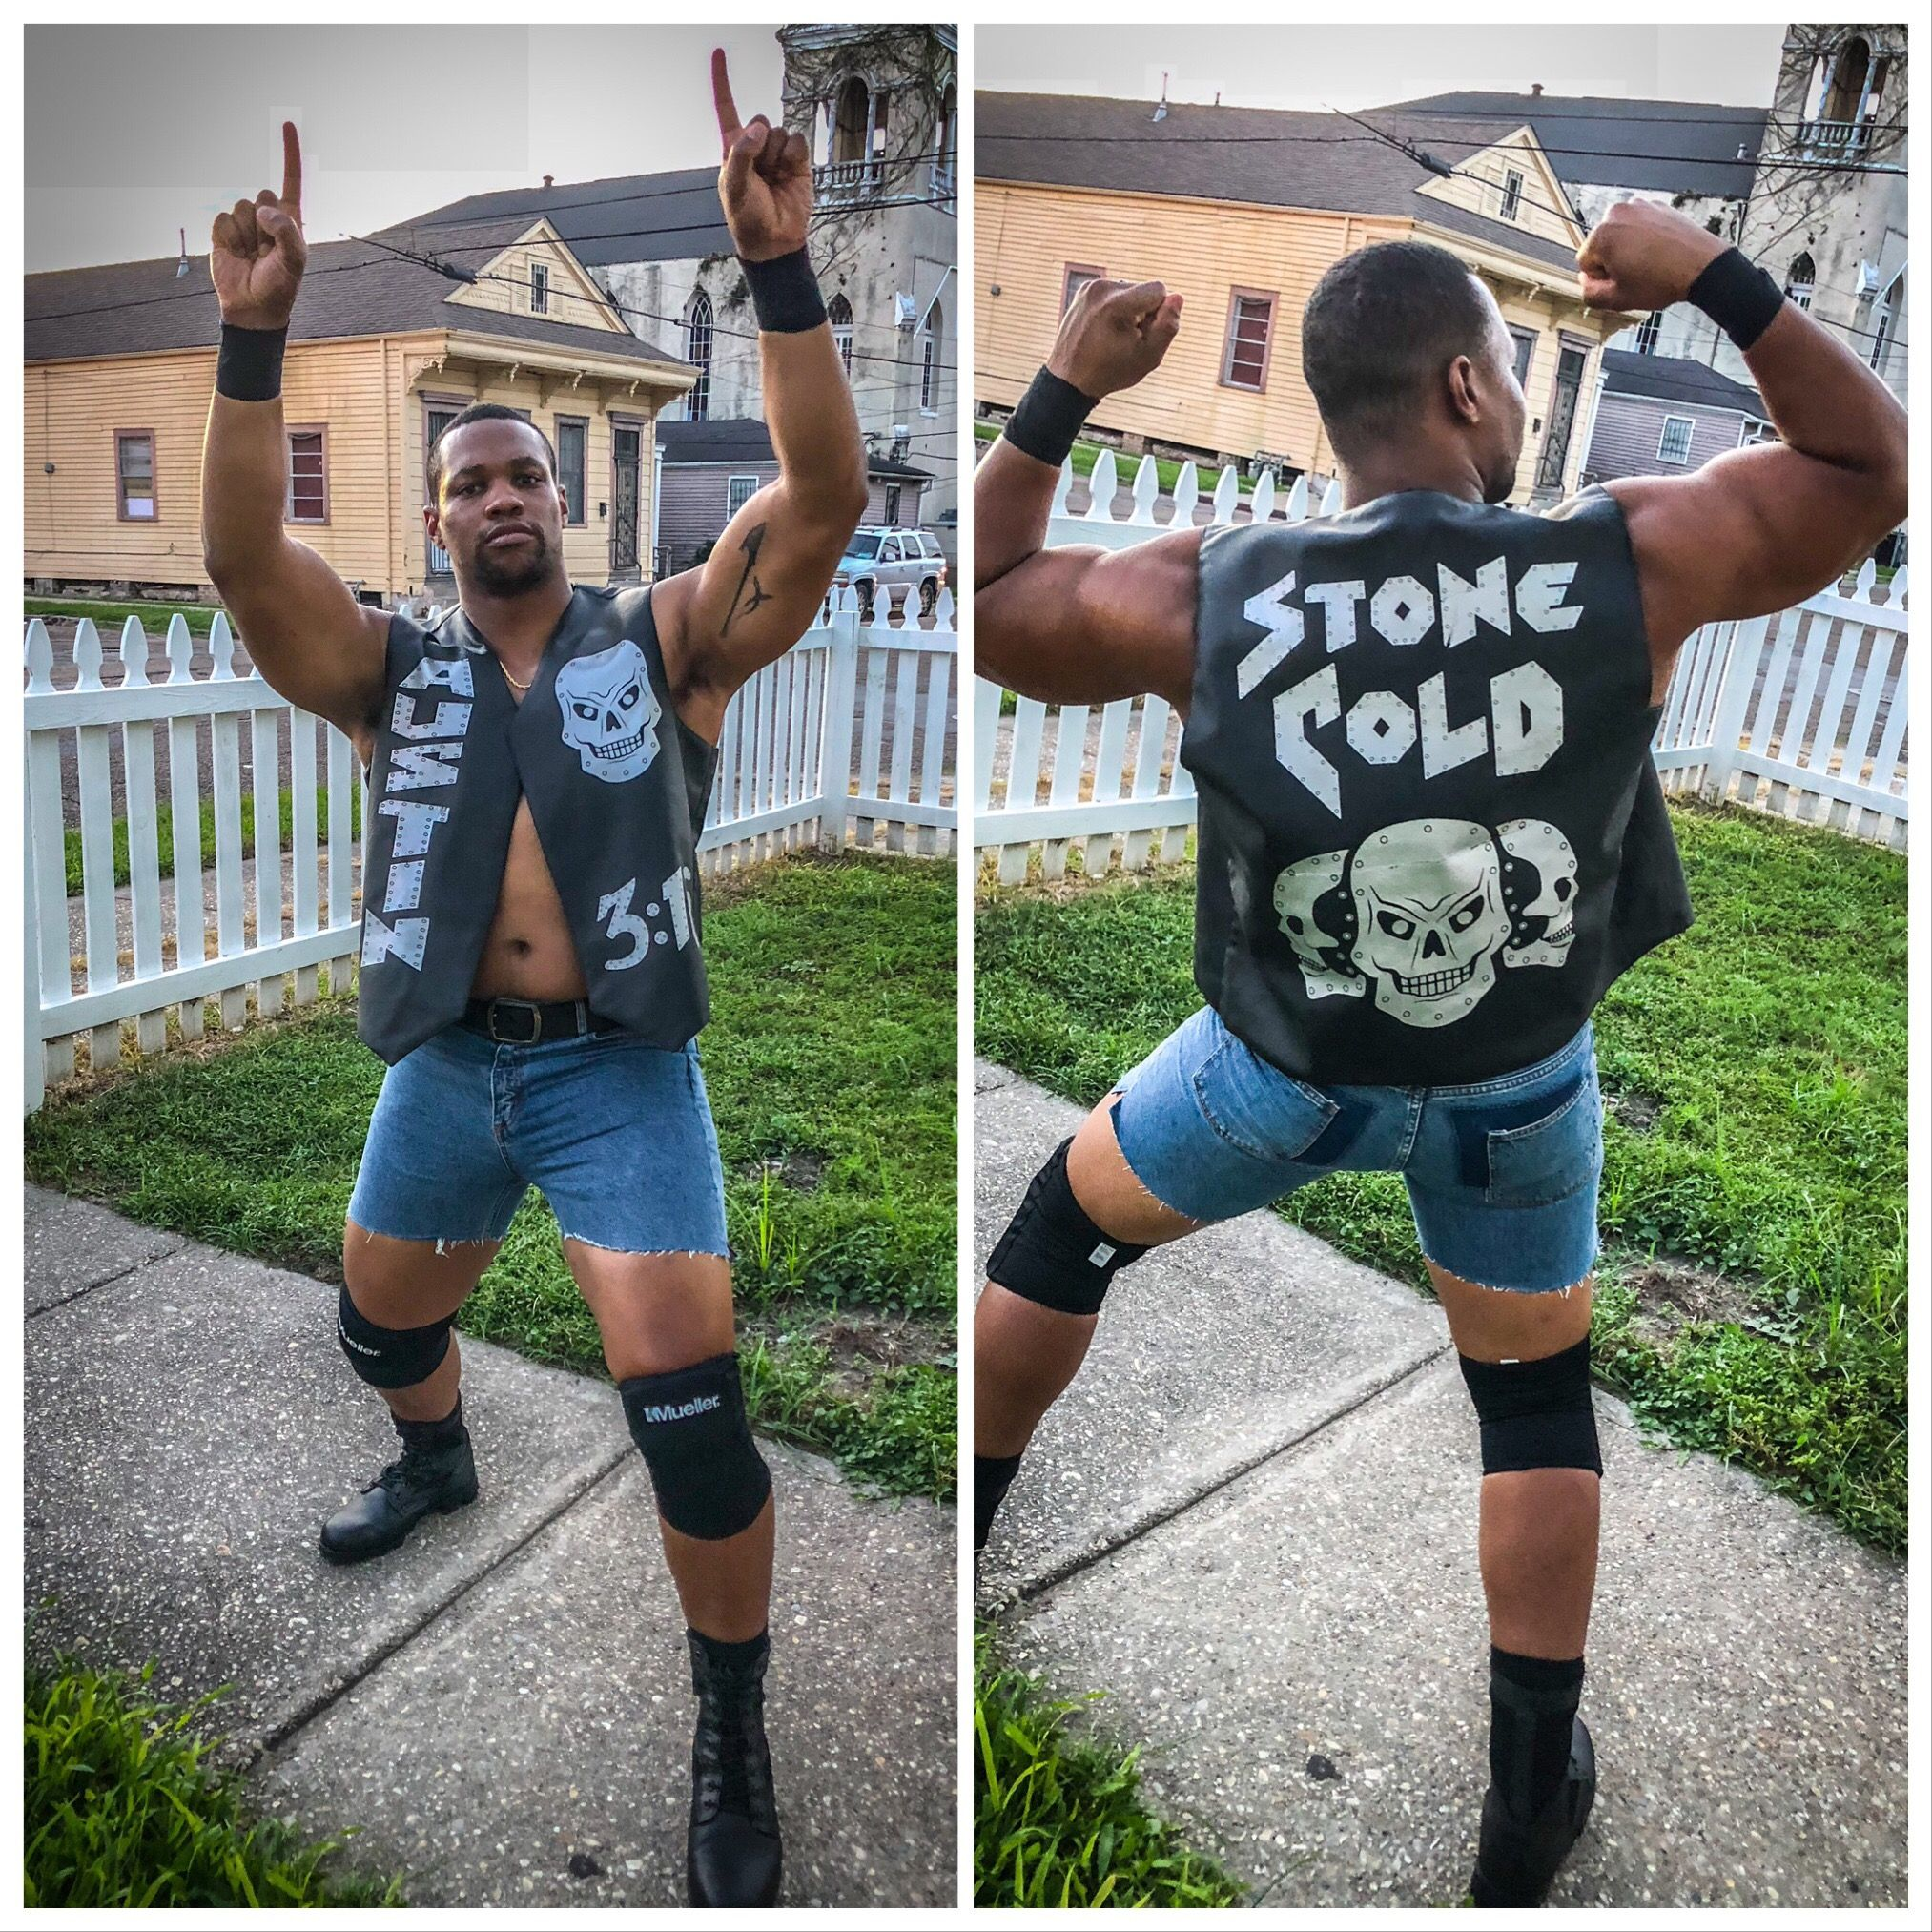 Stone Cold Steve Austin Halloween Costume Couples Costumes